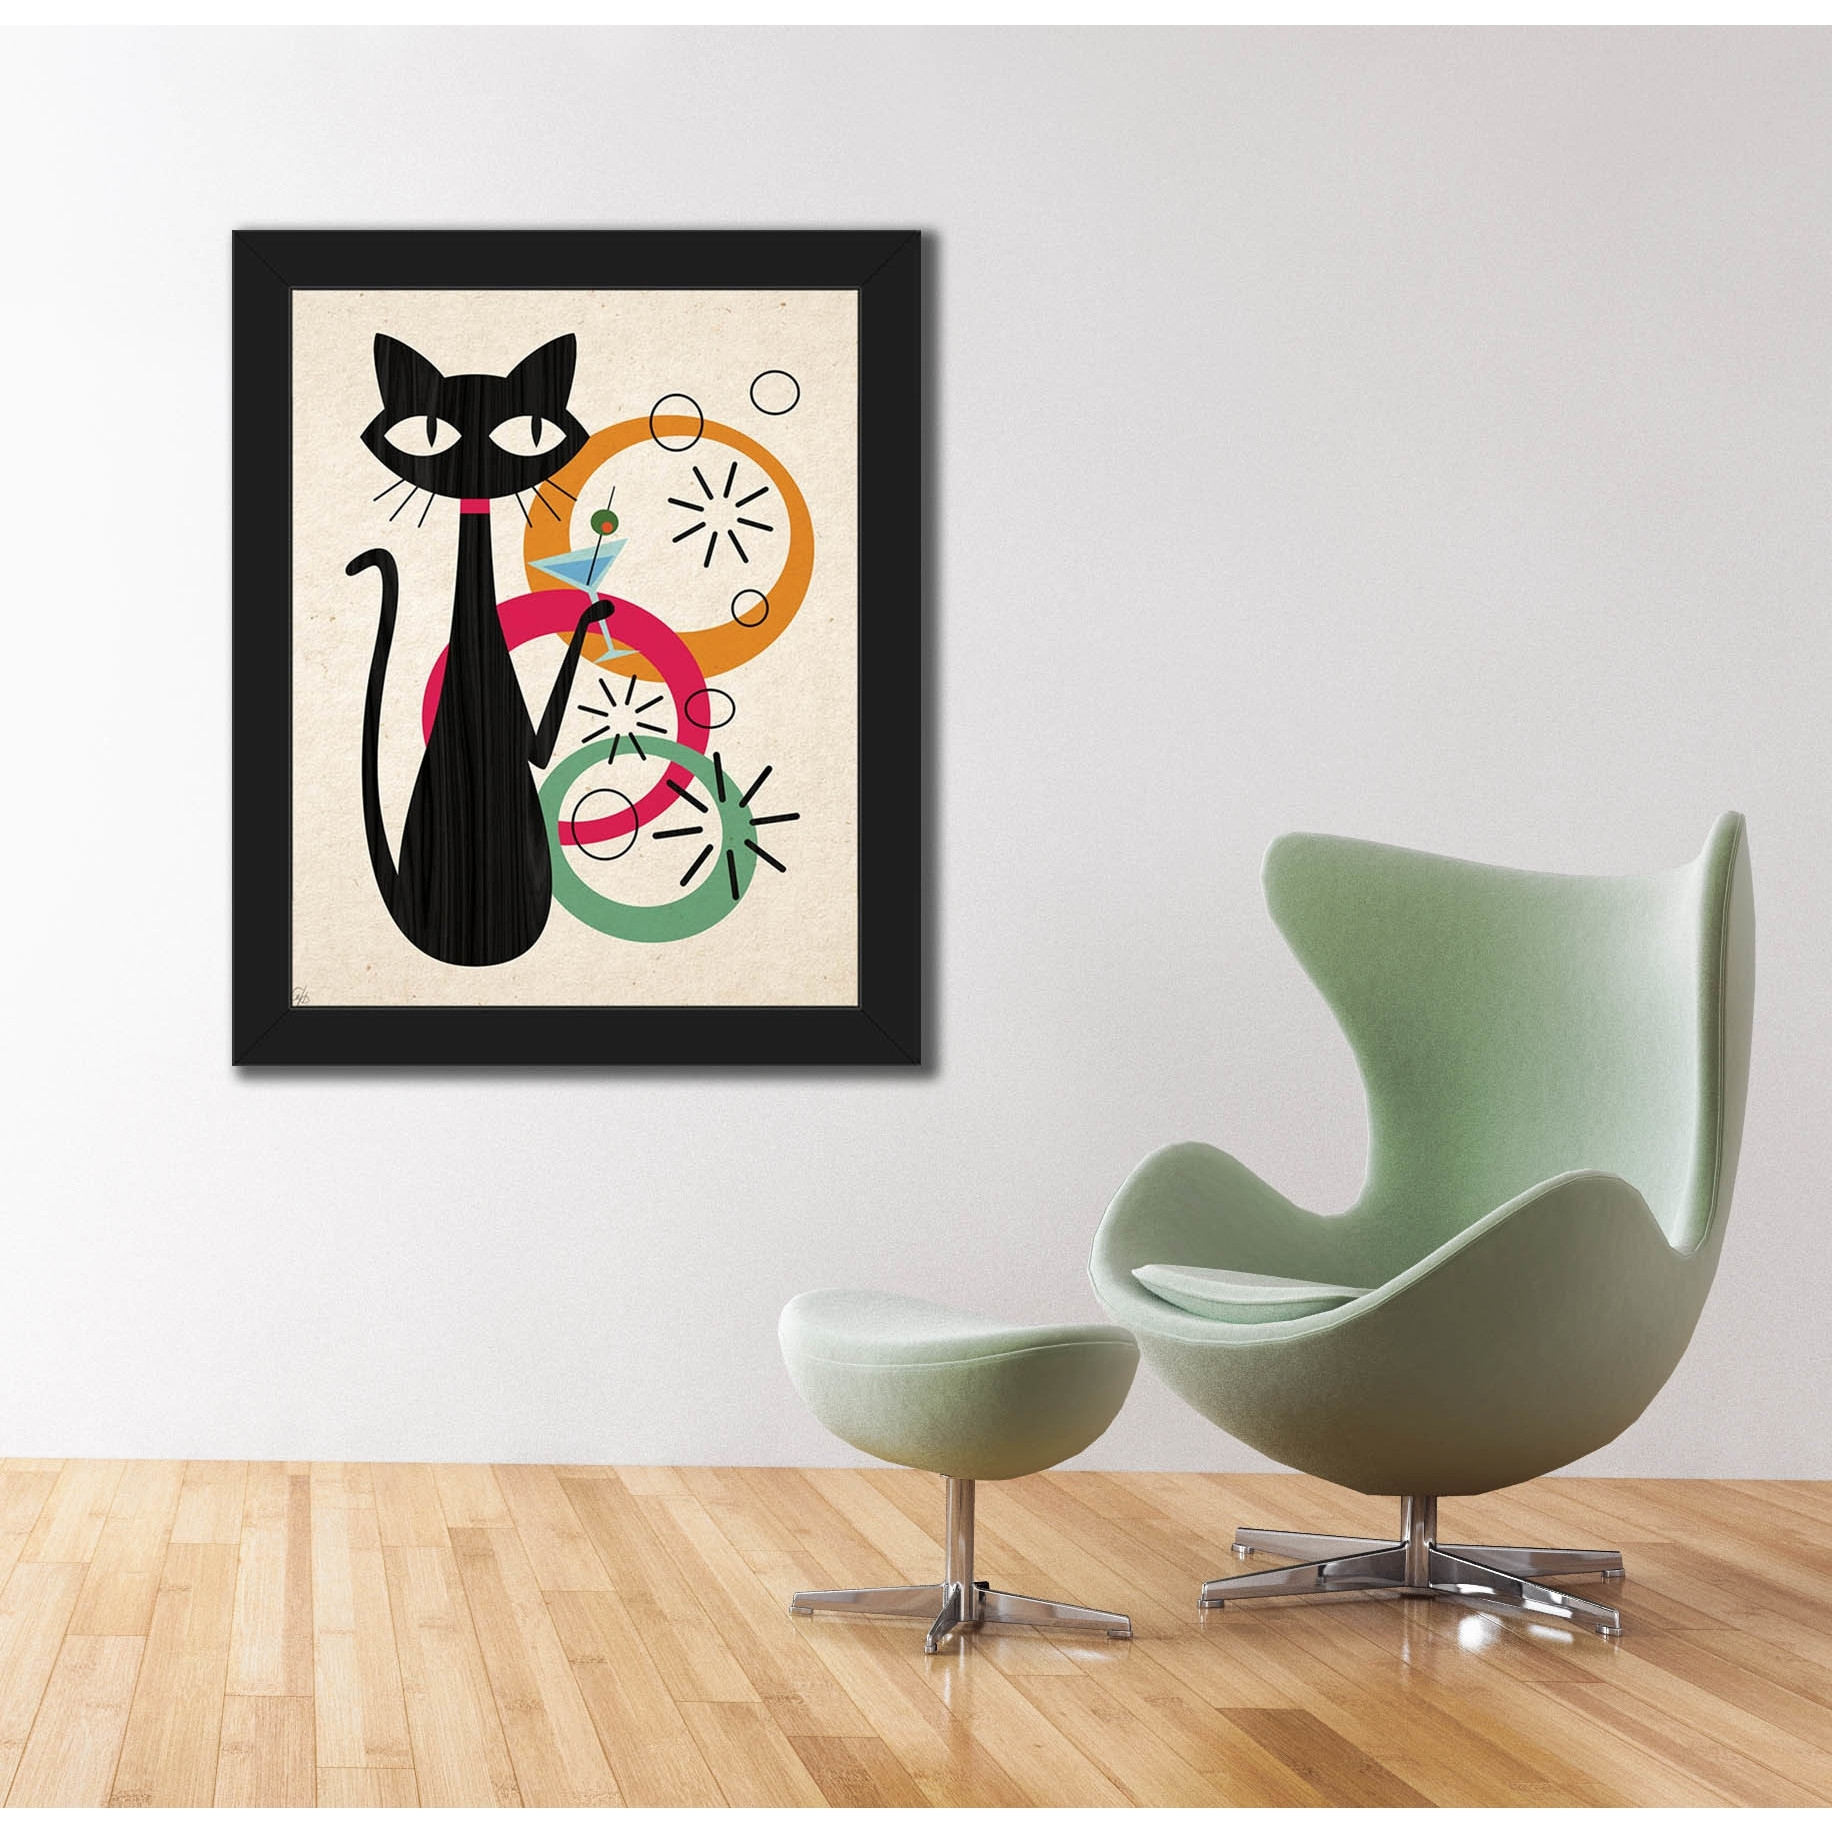 Shop Retro Martini Cat Mod Framed Canvas Wall Art Print – On Sale With Regard To Fashionable Cat Canvas Wall Art (Gallery 17 of 20)